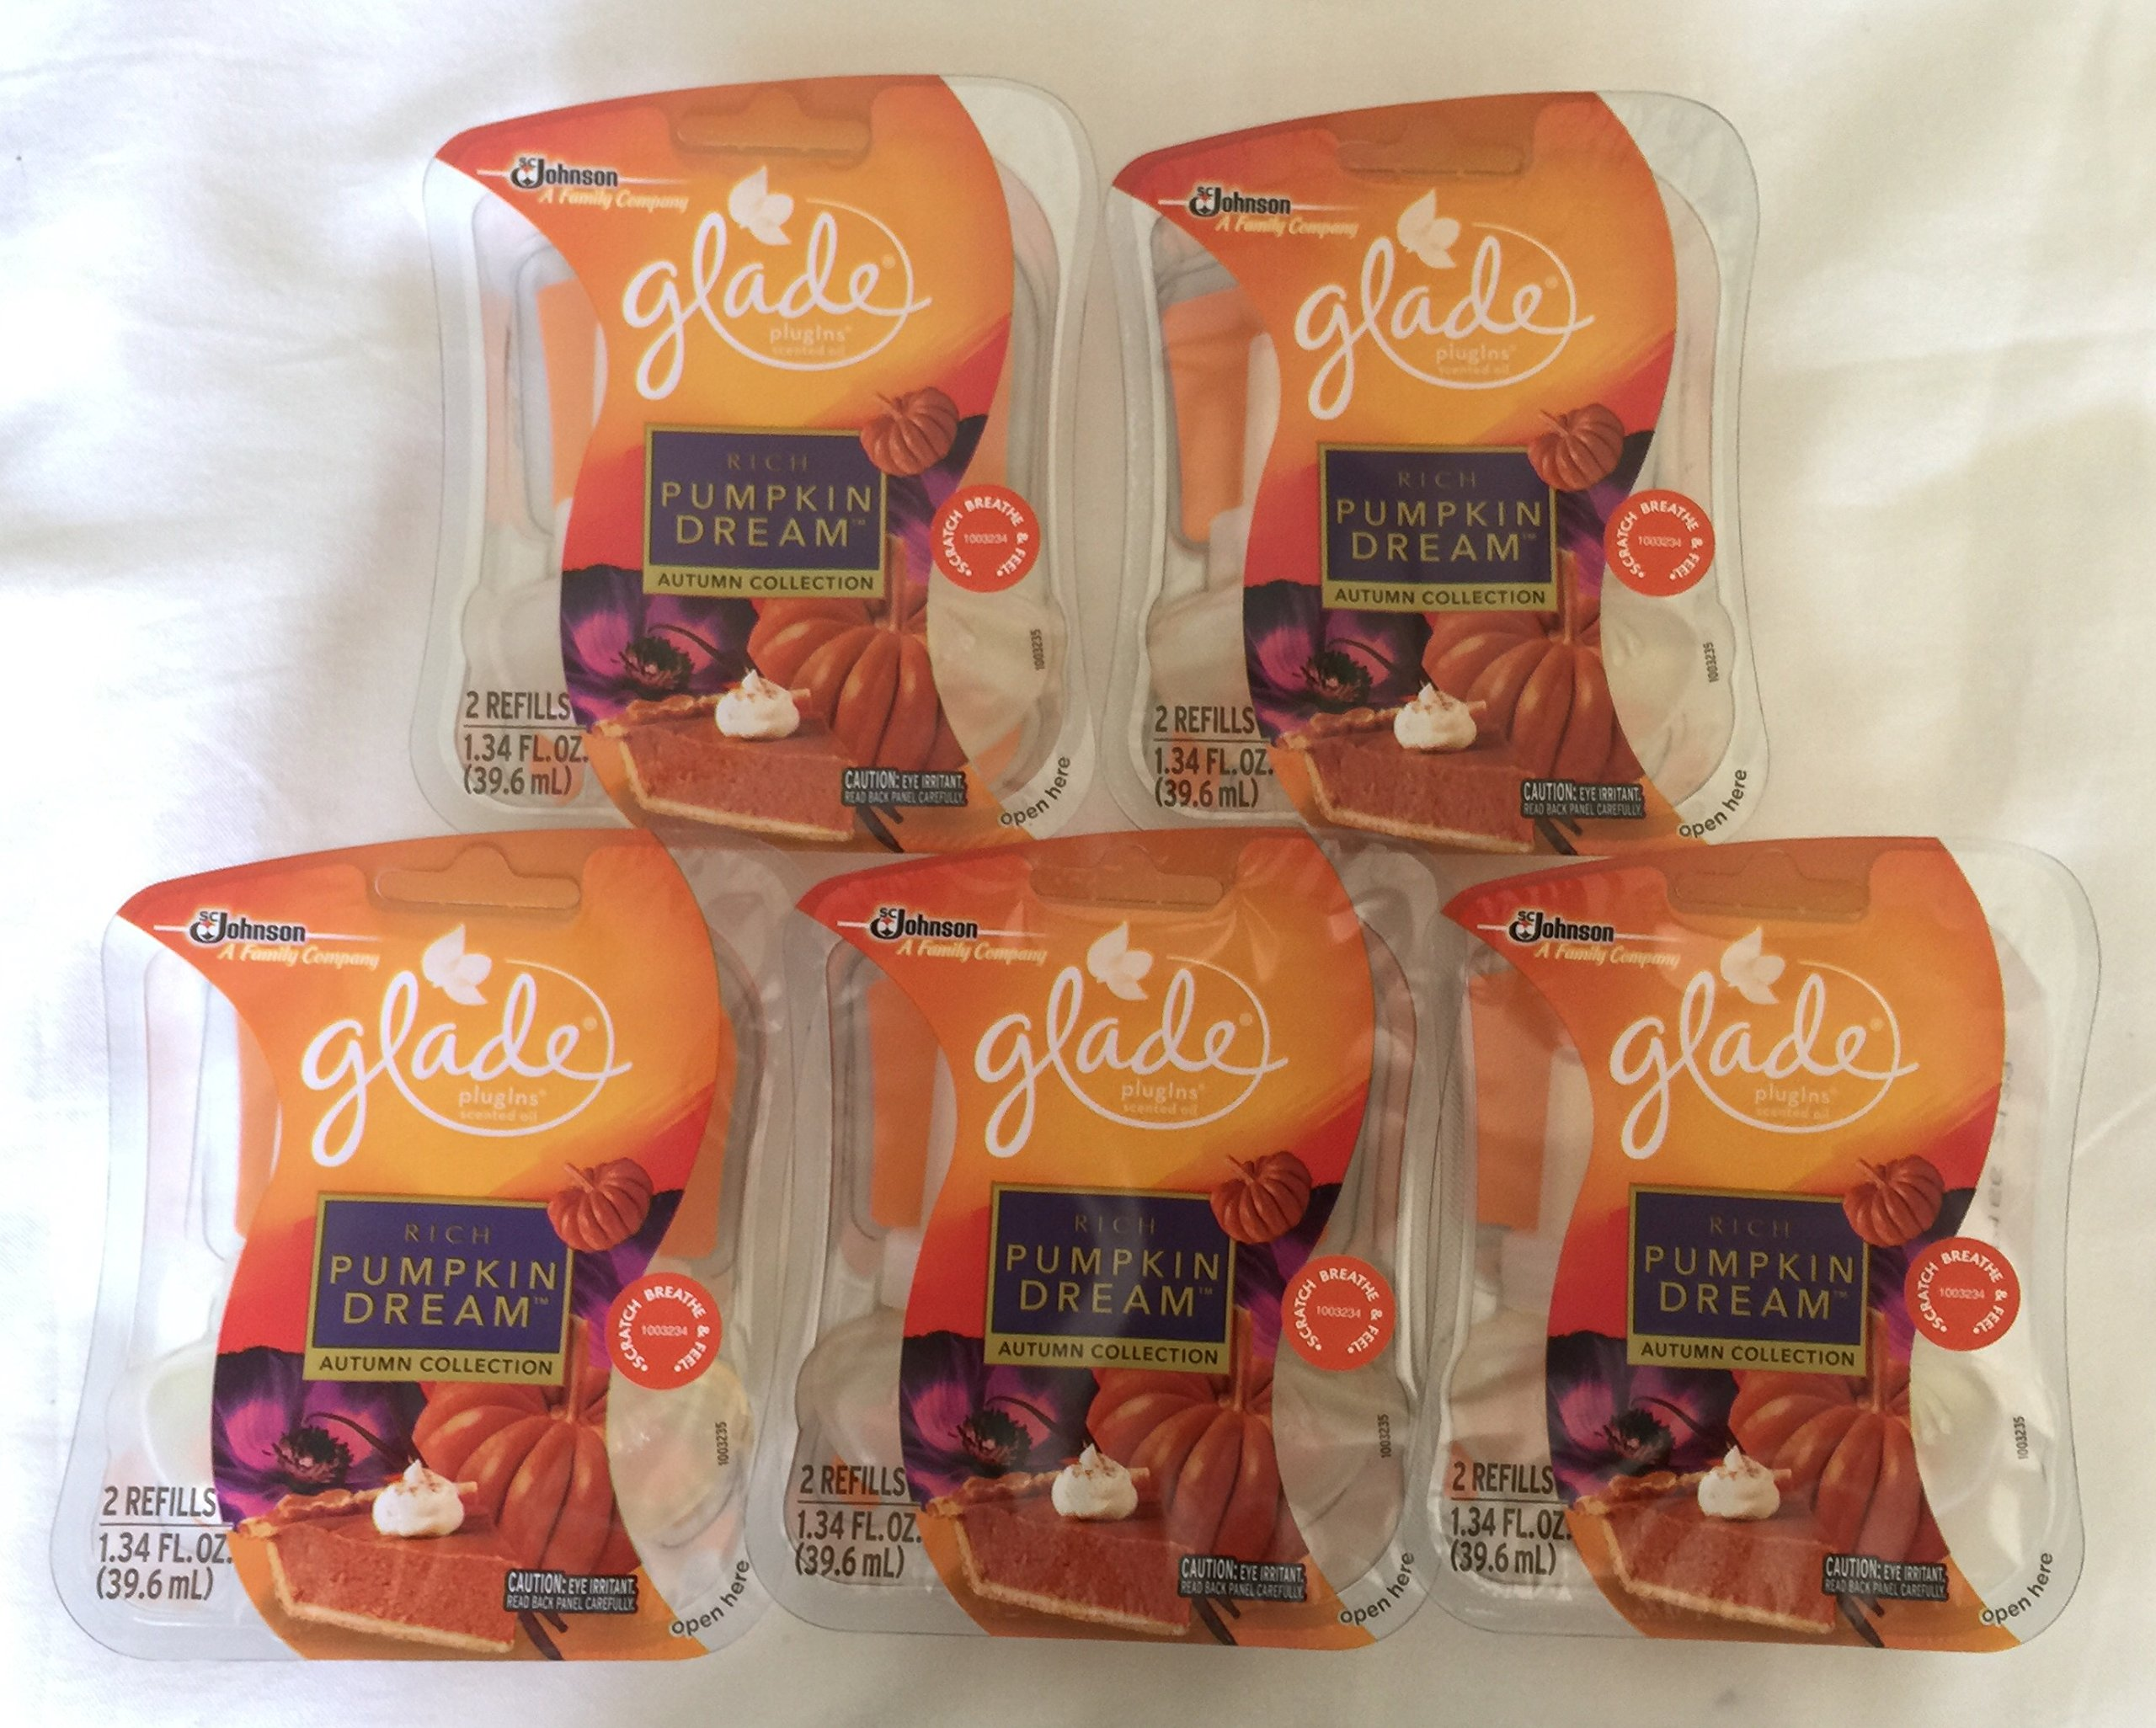 Glade 10 Plugins Scented Oil Air Freshener Refill, Rich Pumpkin Dreams, 5 Twin Packs by Glade